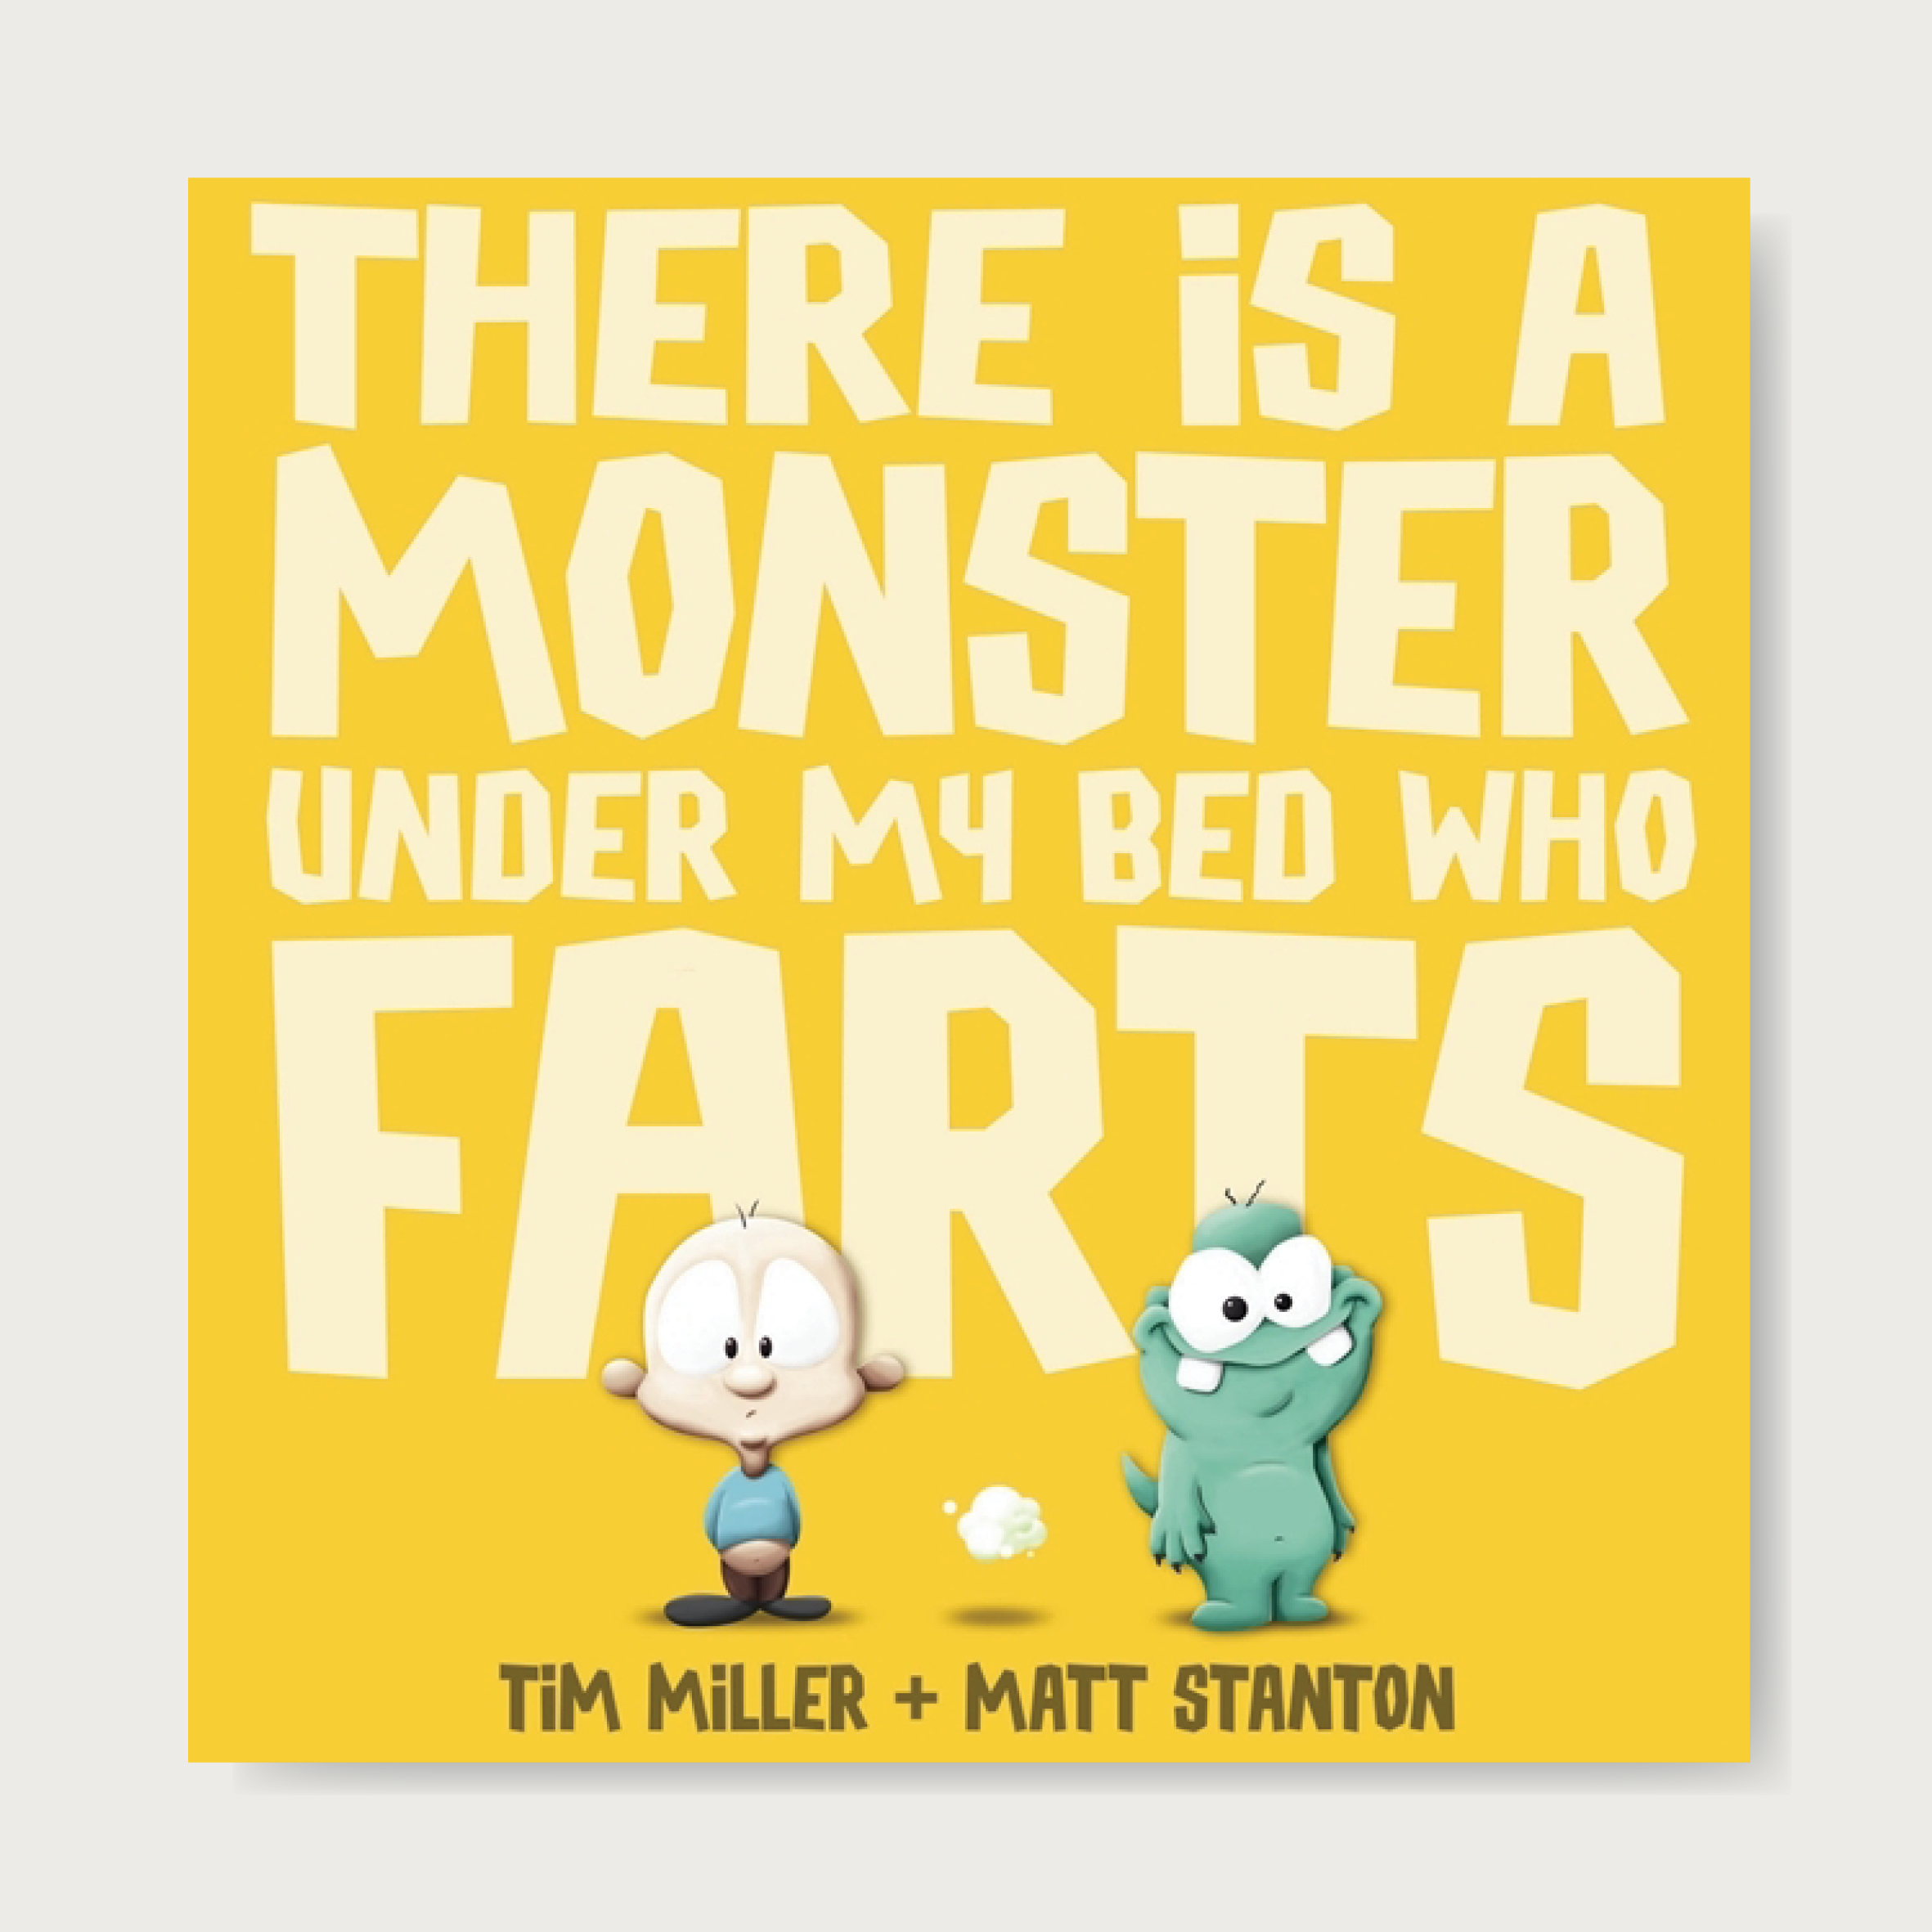 There is a monster under my bed who farts. You don't want to use the bathroom after him...  The funniest picture book since THE MOLE WHO KNEW IT WAS NONE OF HIS BUSINESS!  Everyone says, 'It wasn't me!' But what if it REALLY wasn't you? What if it was the monster who lives under your bed? How much trouble can one little monster cause... From two amazing new talents comes a hilarious picture book that's guaranteed to be a runaway hit with both young and old.Ages: 2+